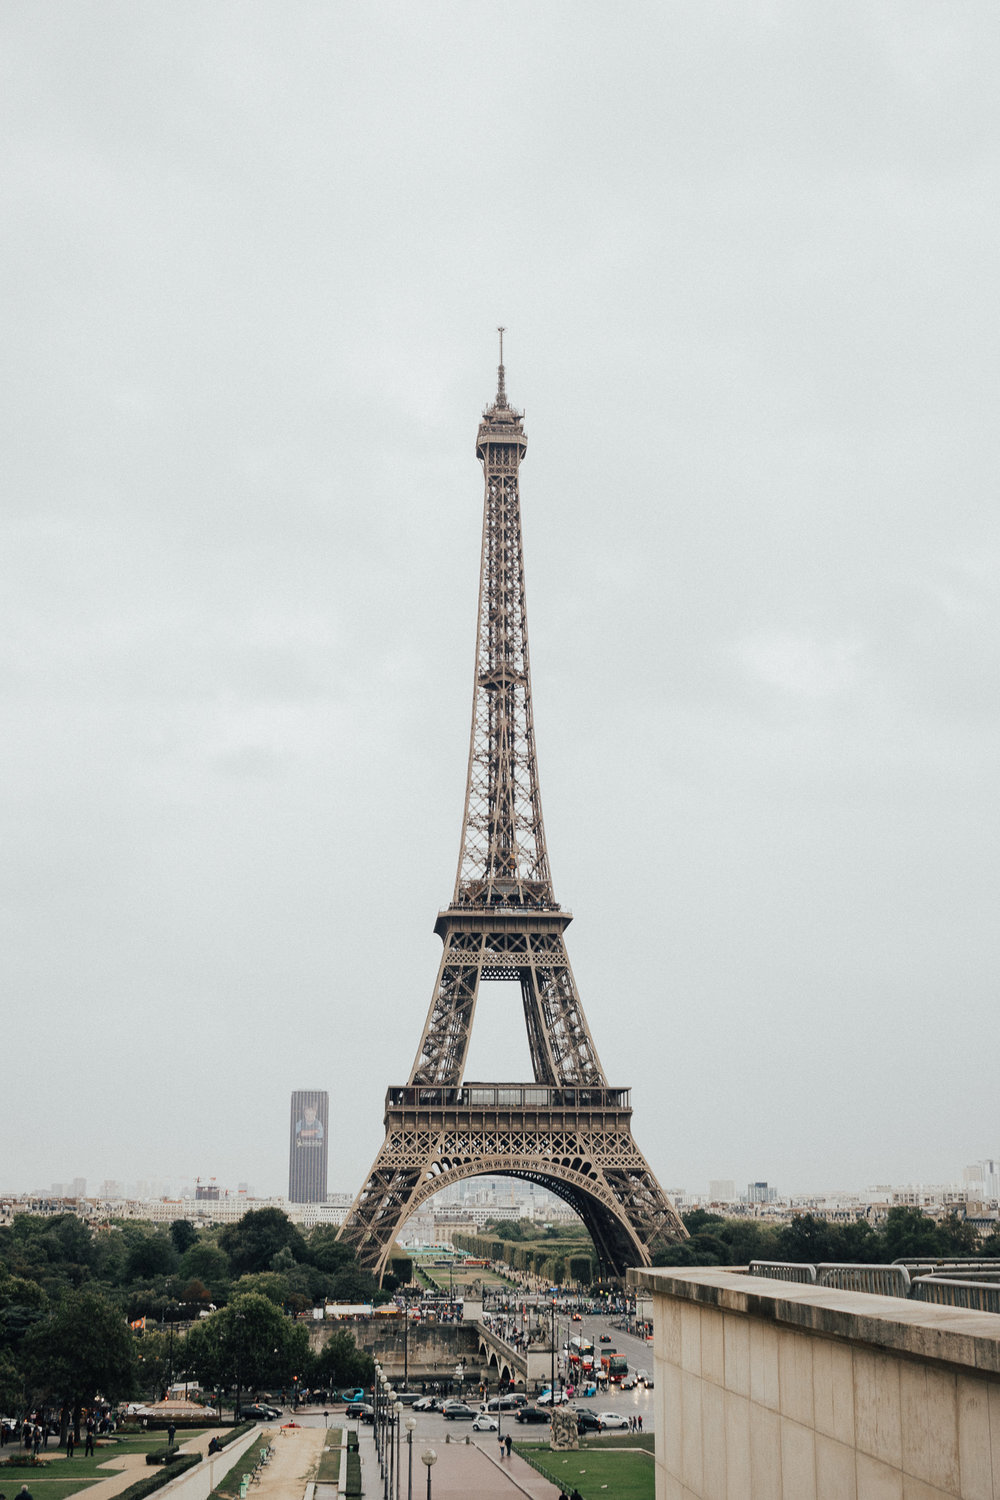 The Eiffel Tower, photography credit - Arlene Salazar